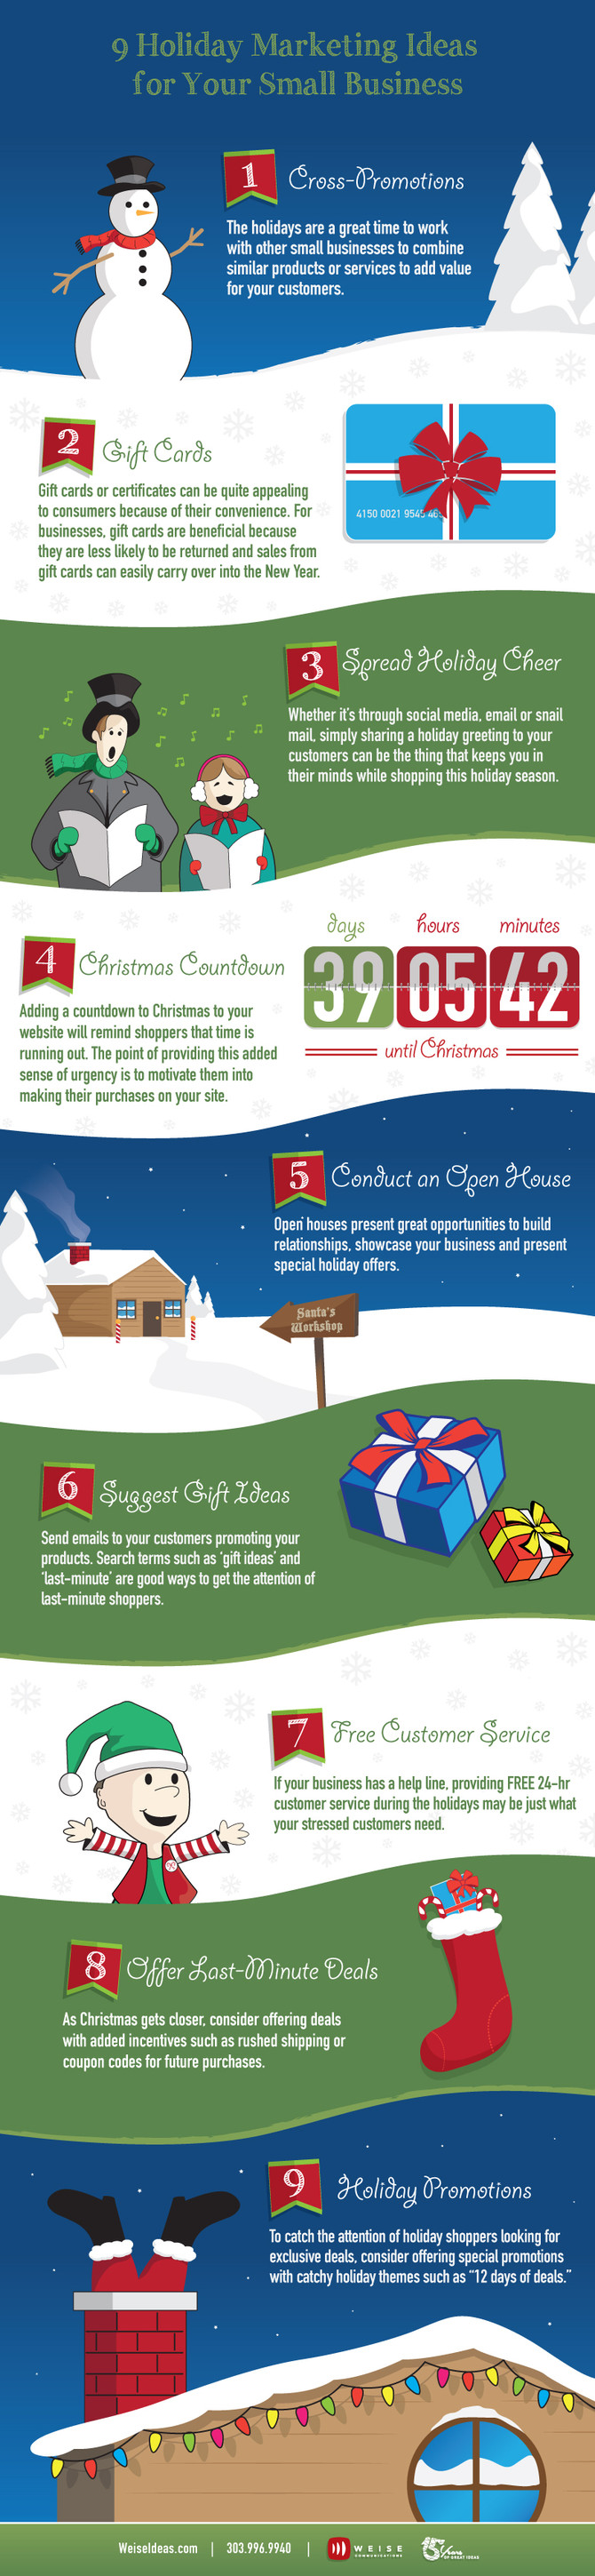 9 Holiday Marketing Ideas for Your Small Business